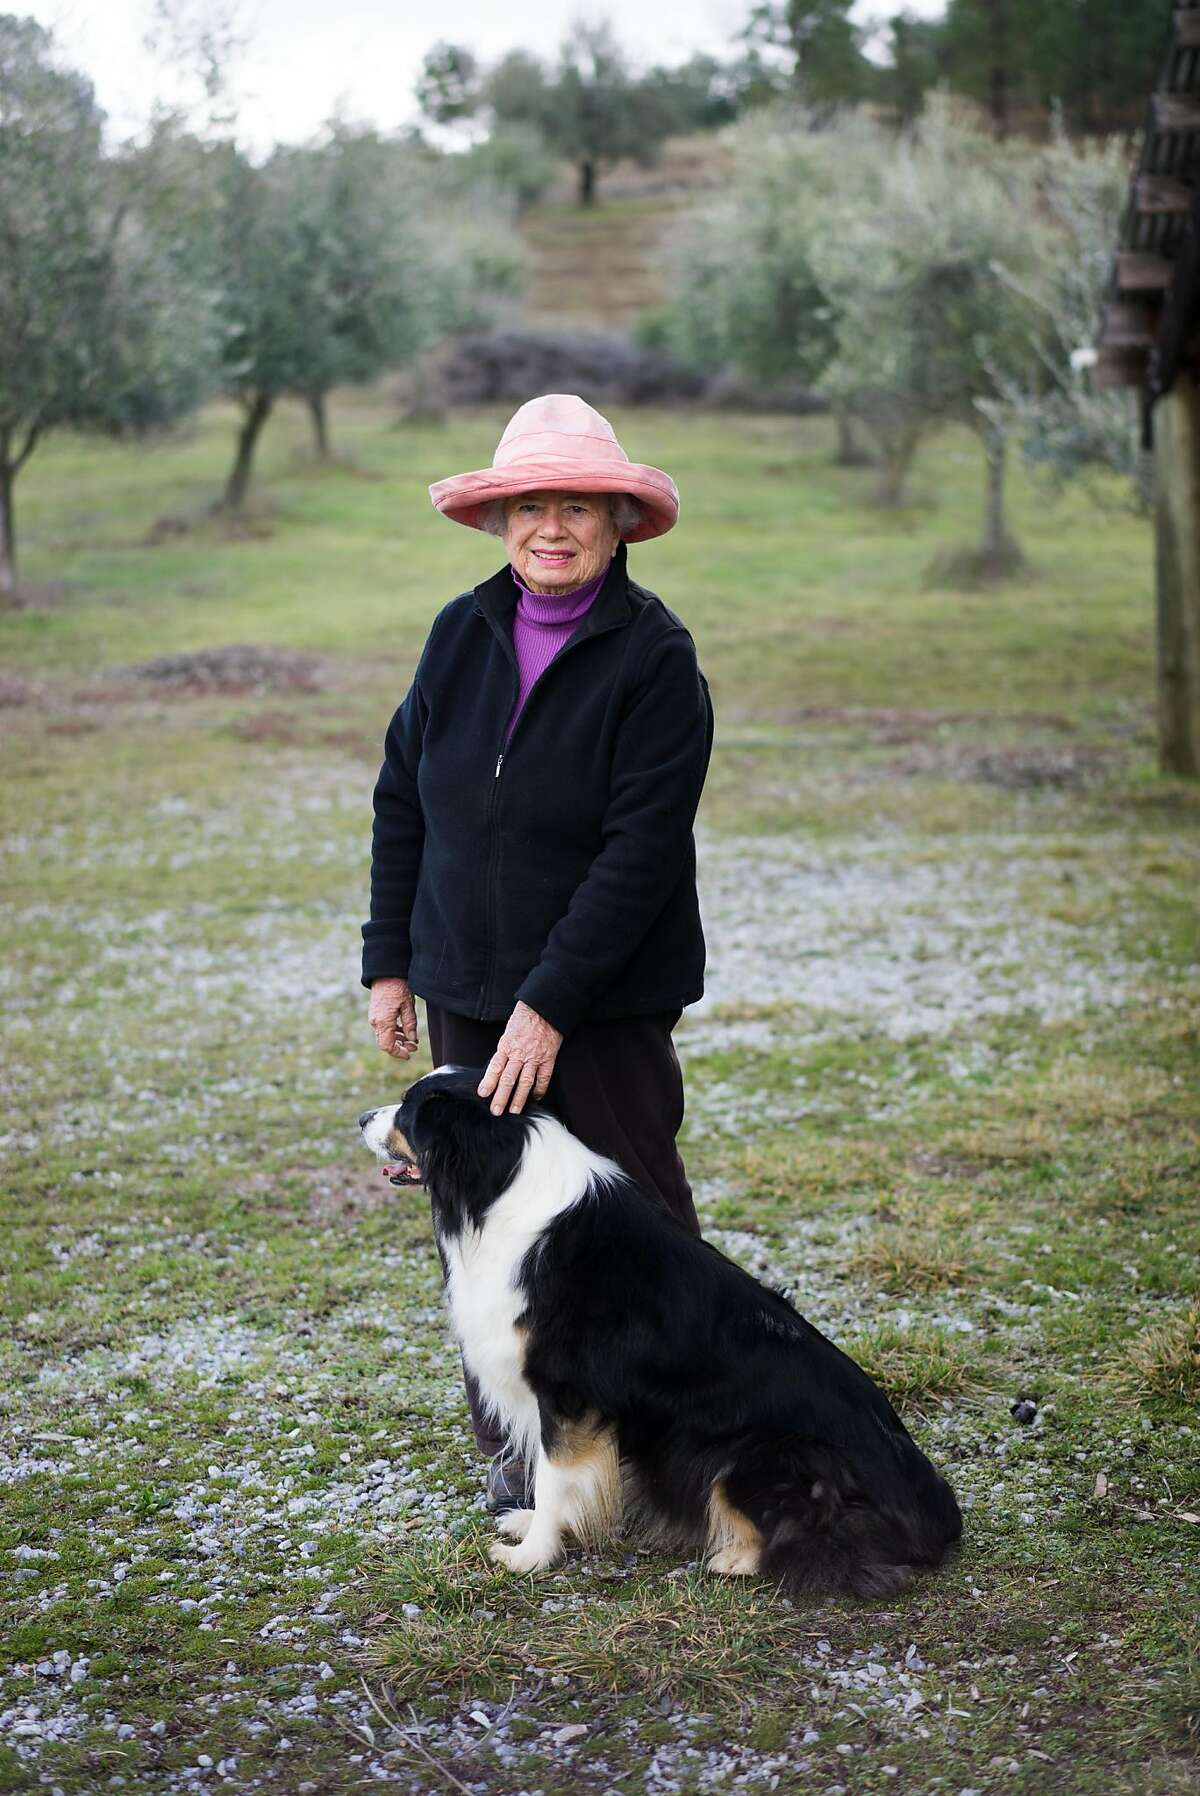 Susan Bragstad poses for a portrait at Amador Olive Oil in Jackson, Calif on Friday, Jan. 15, 2016. Bragstad started making olive oil in the late 1990s.